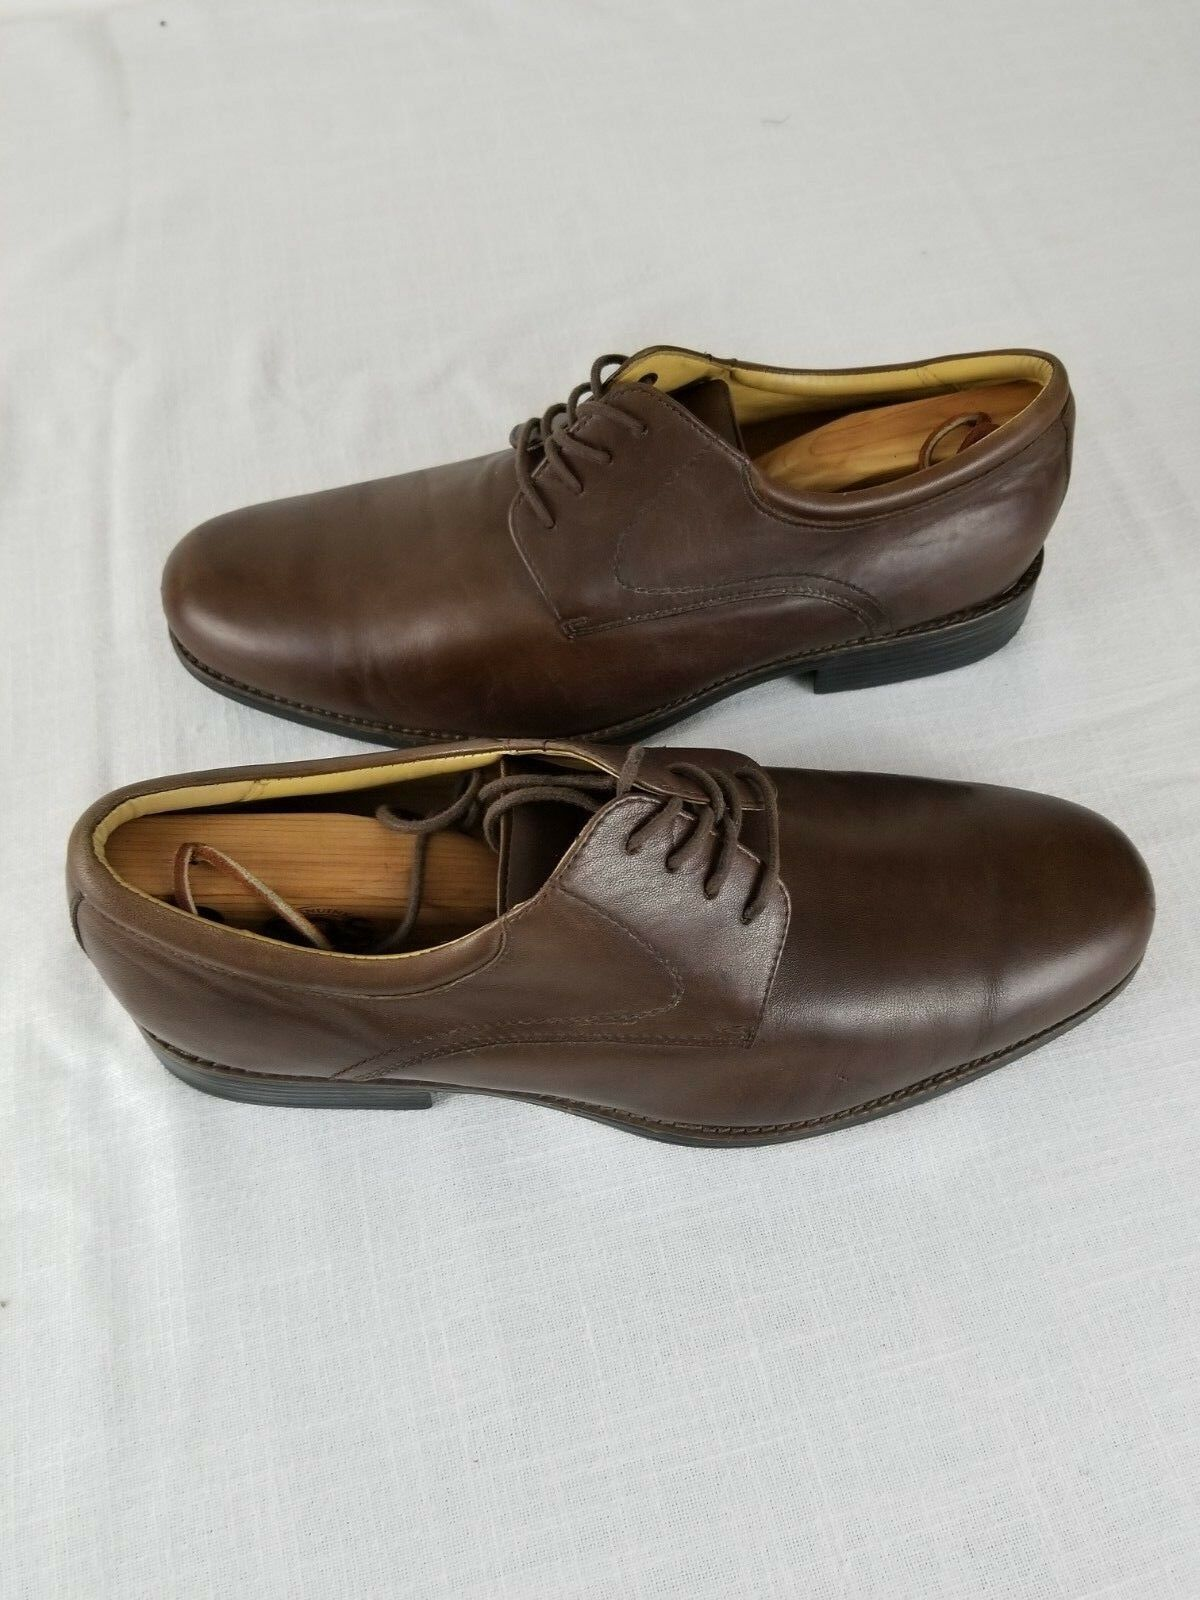 Johnston Murphy Mens Oxfords Leather Brown  20 7426 Sz 11.5 M